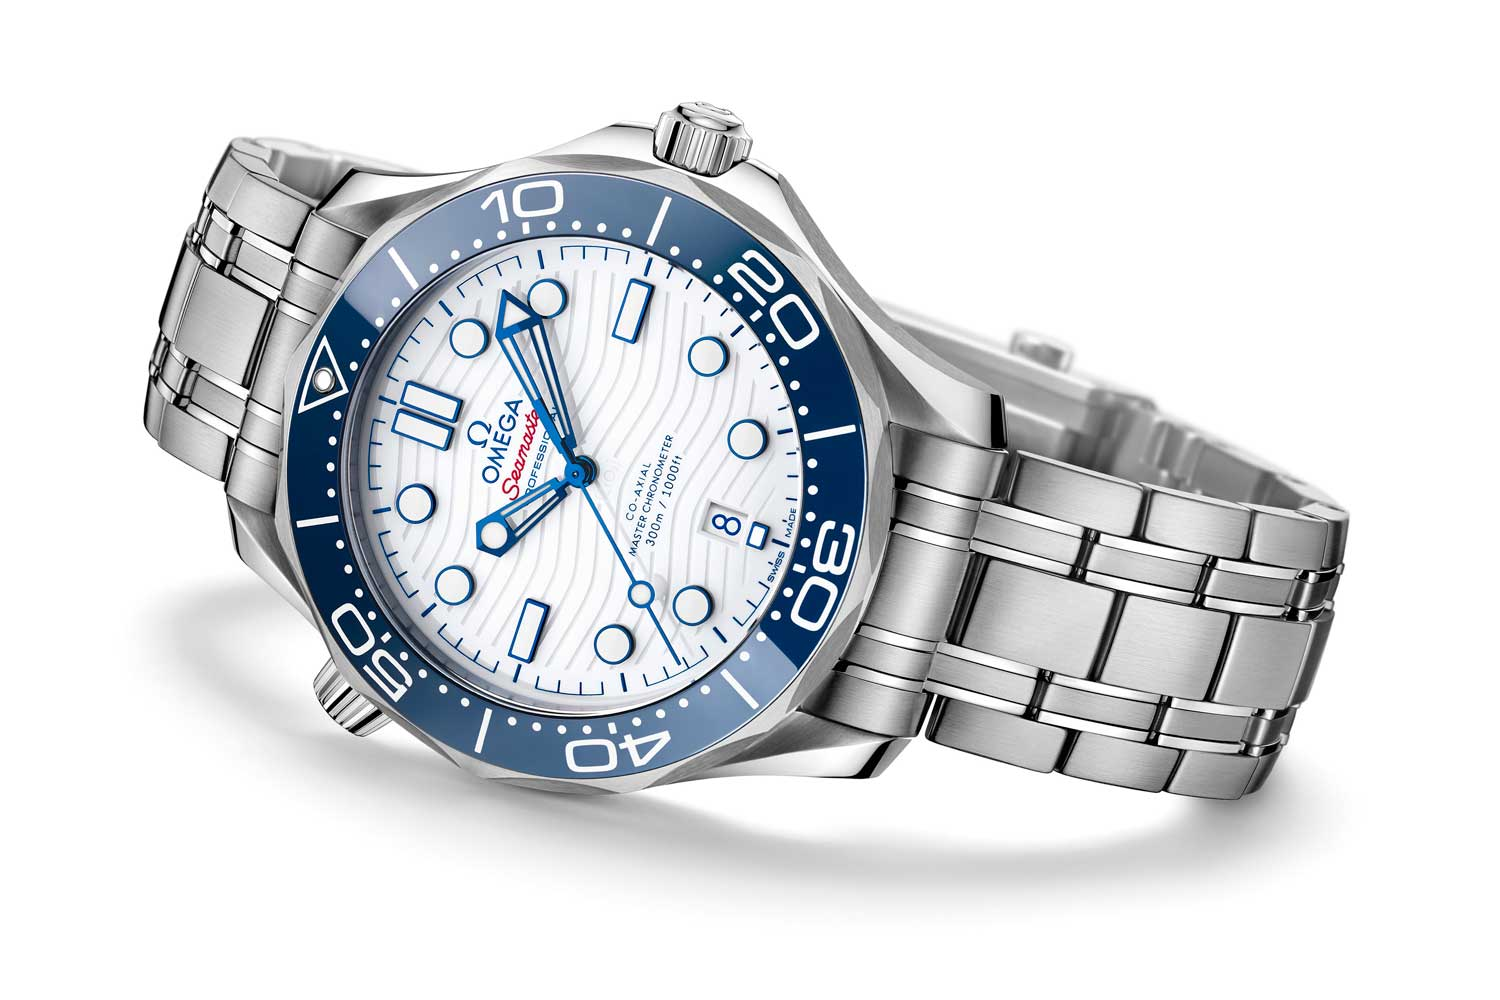 """The Seamaster Diver """"Tokyo 2020"""" Edition continues the clean, minimal design theme in a colorway of blue, white and just a hint of red."""